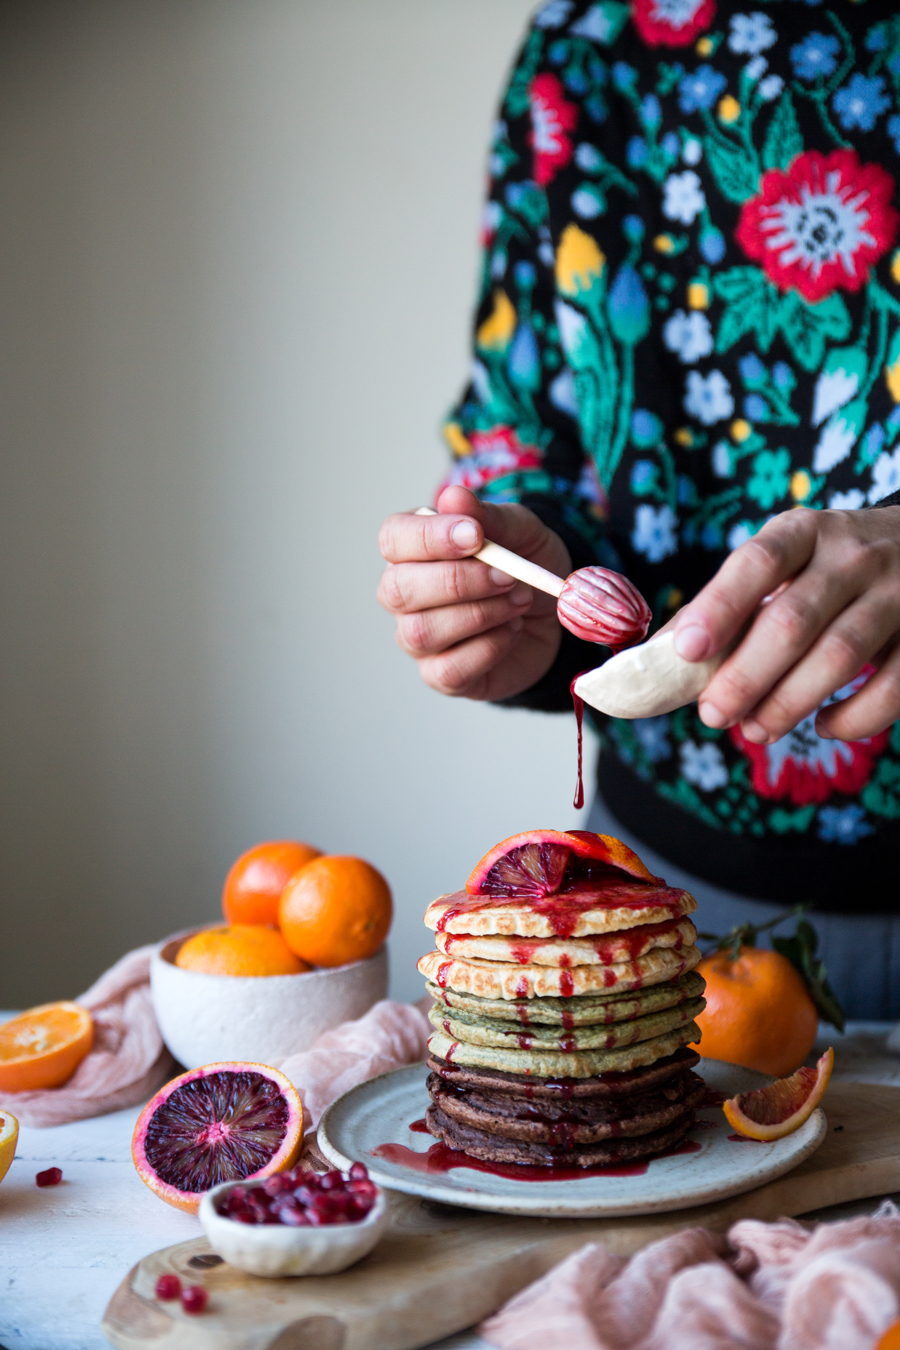 Where can I get the best food photography props?